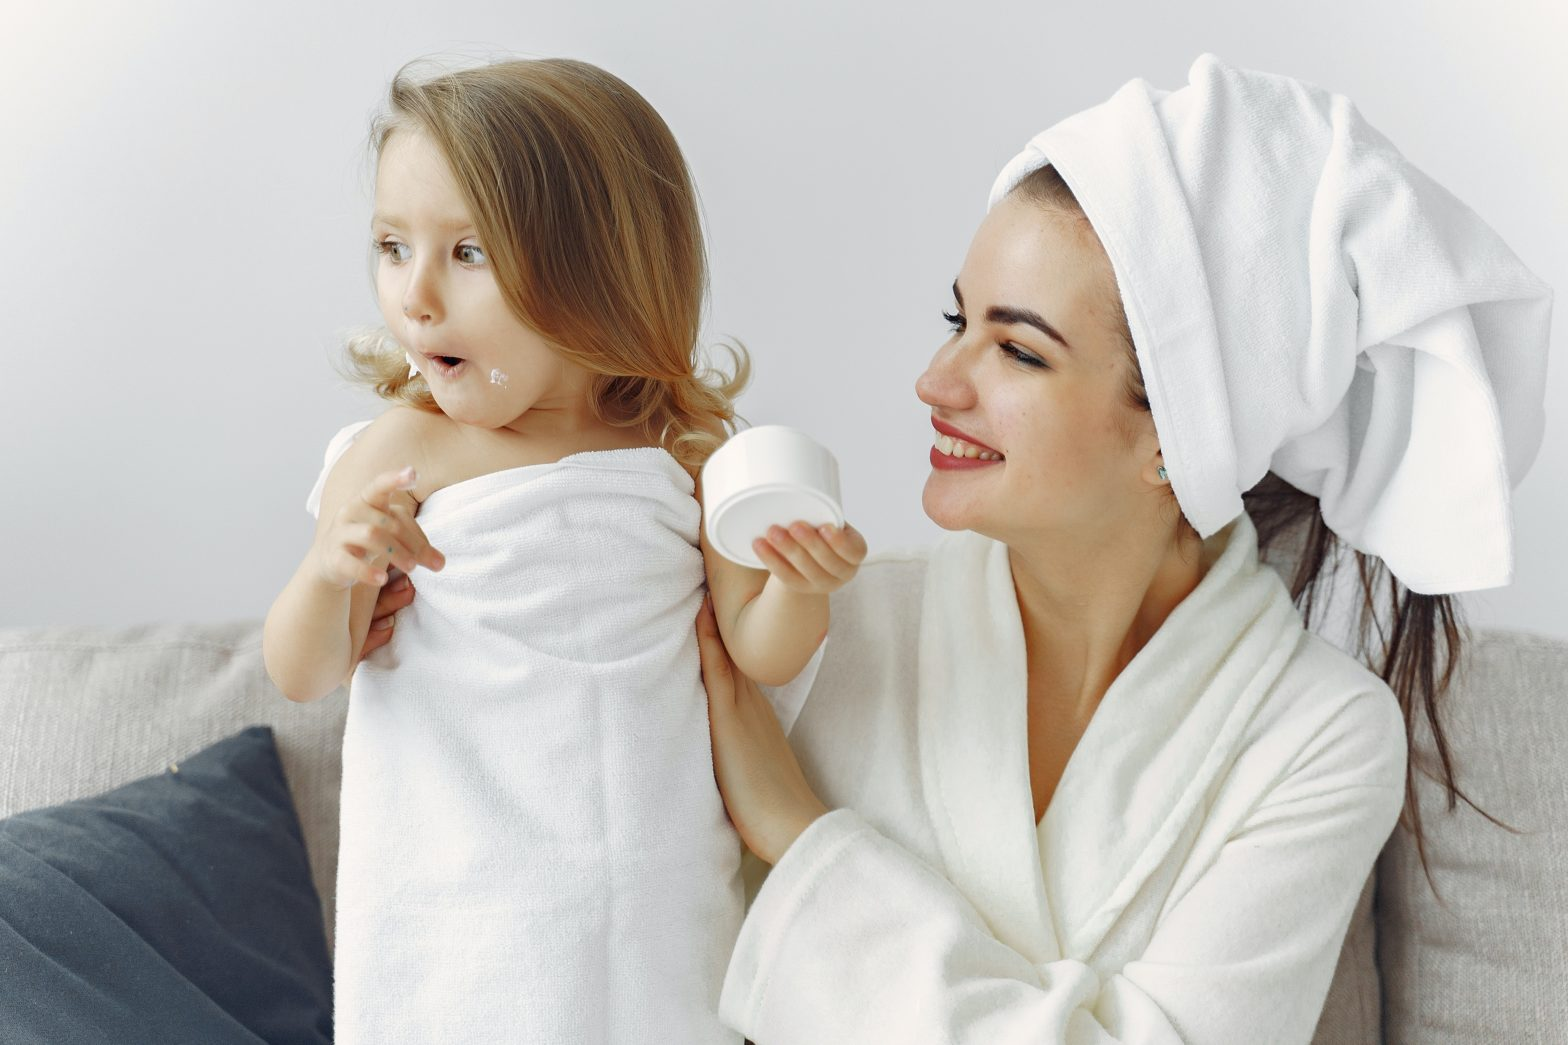 Mother and young daughter in robes and towels, smiling and playing after bath.